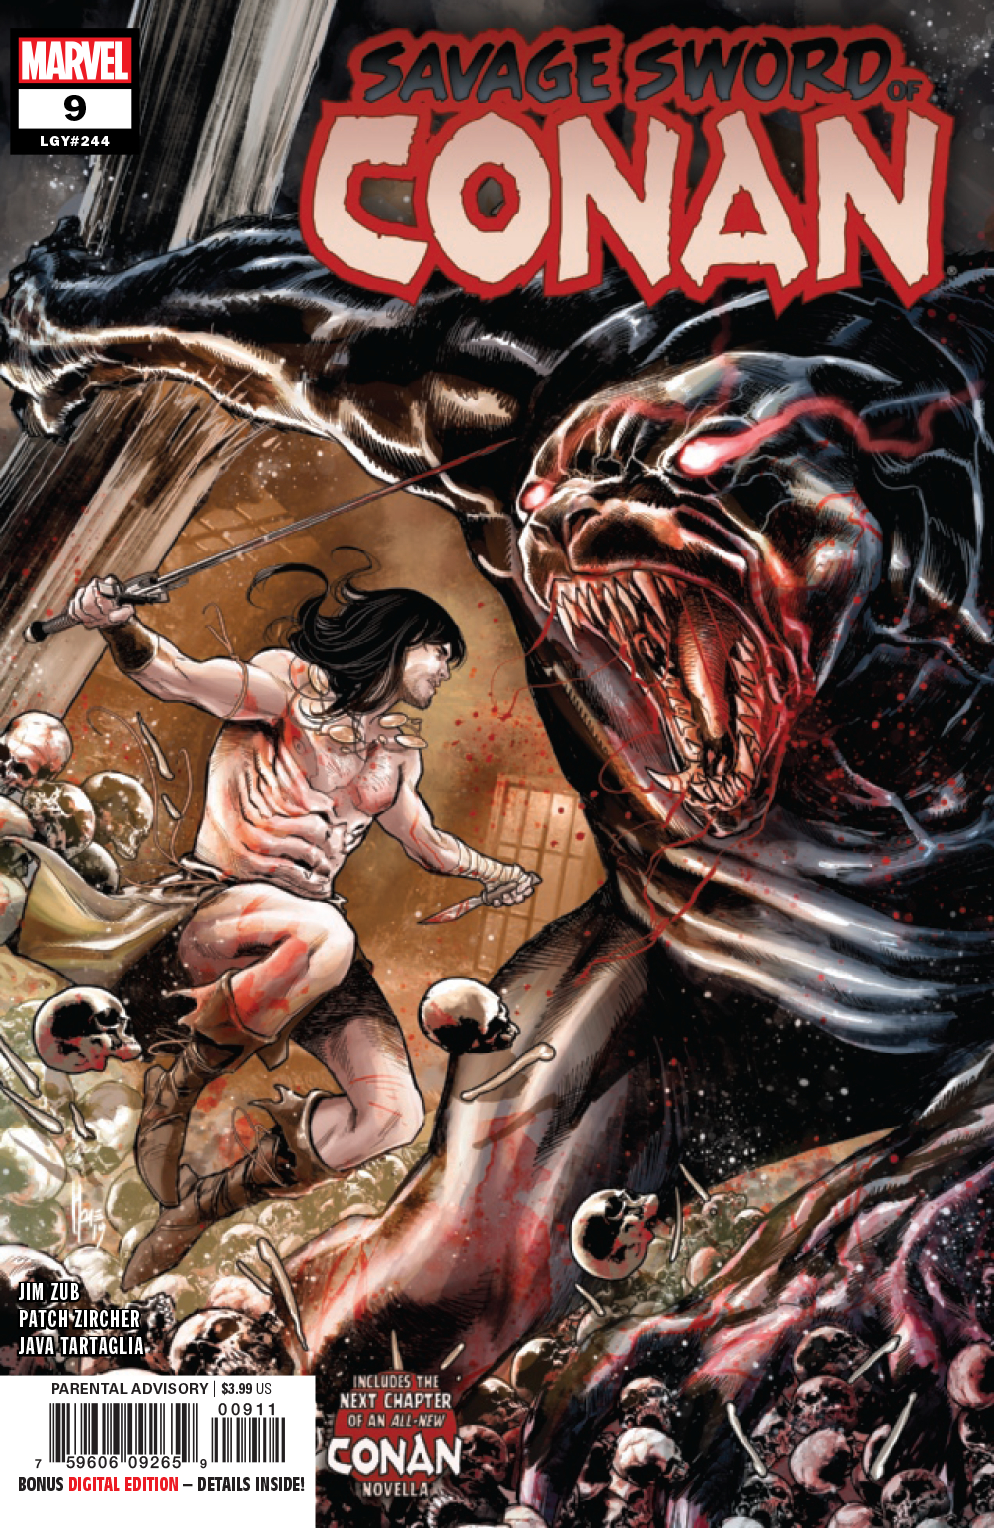 SAVAGE SWORD OF CONAN #9